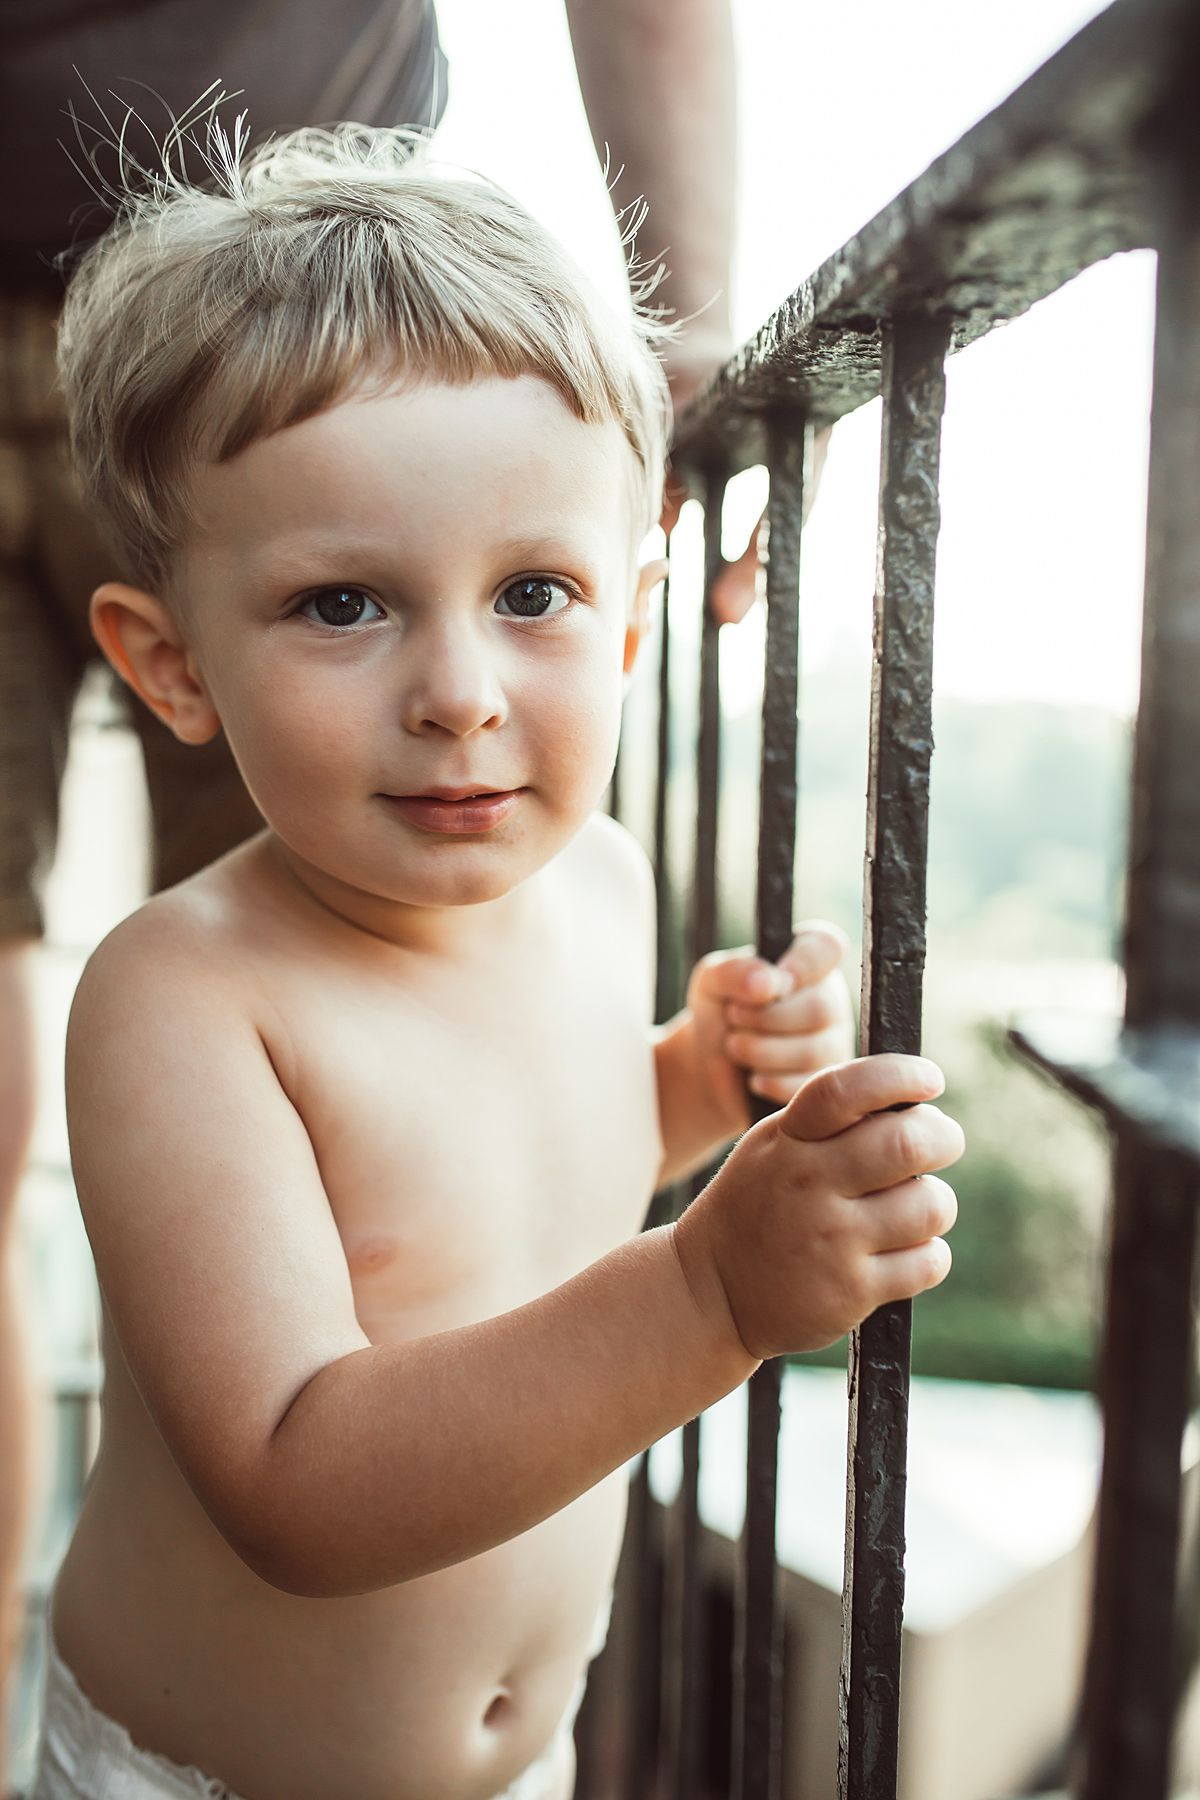 portrait shot of toddler son holding railing on his fire escape. image by krystil mcdowall photography